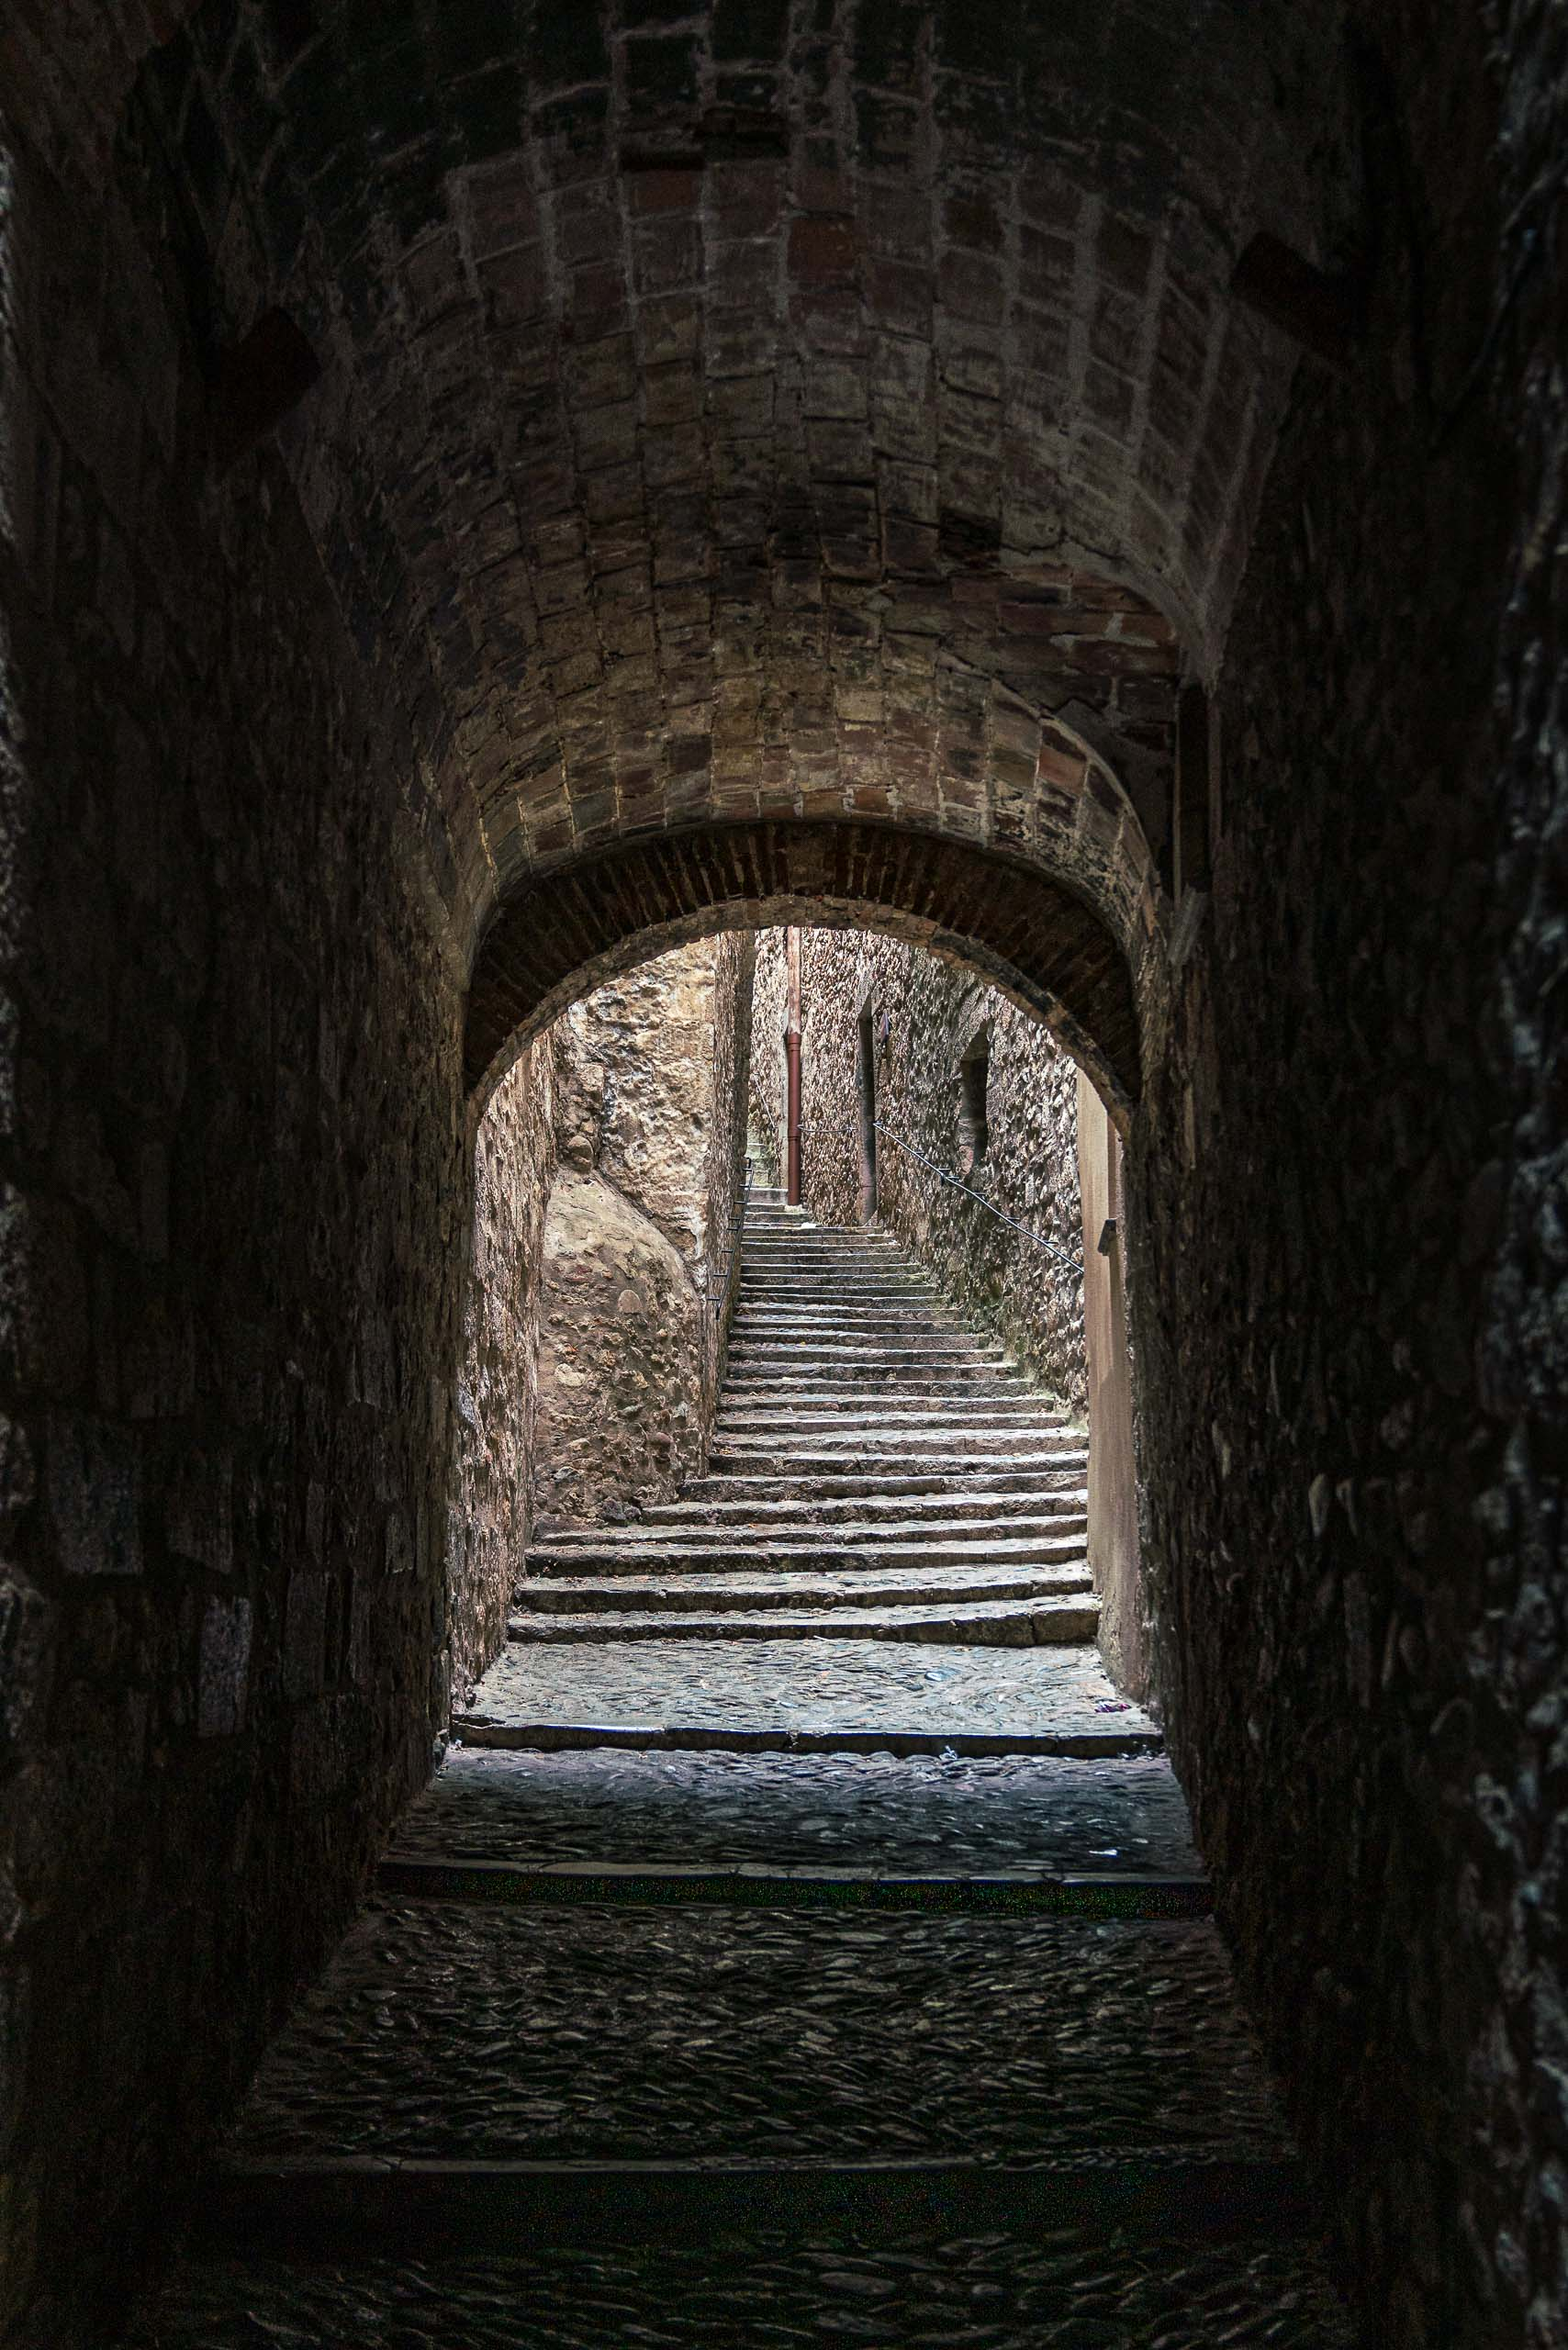 Travel and street photography of Girona, Catalonia Catalunya in Spain made by New York photographer Mary Catherine Messner (mcmessner).